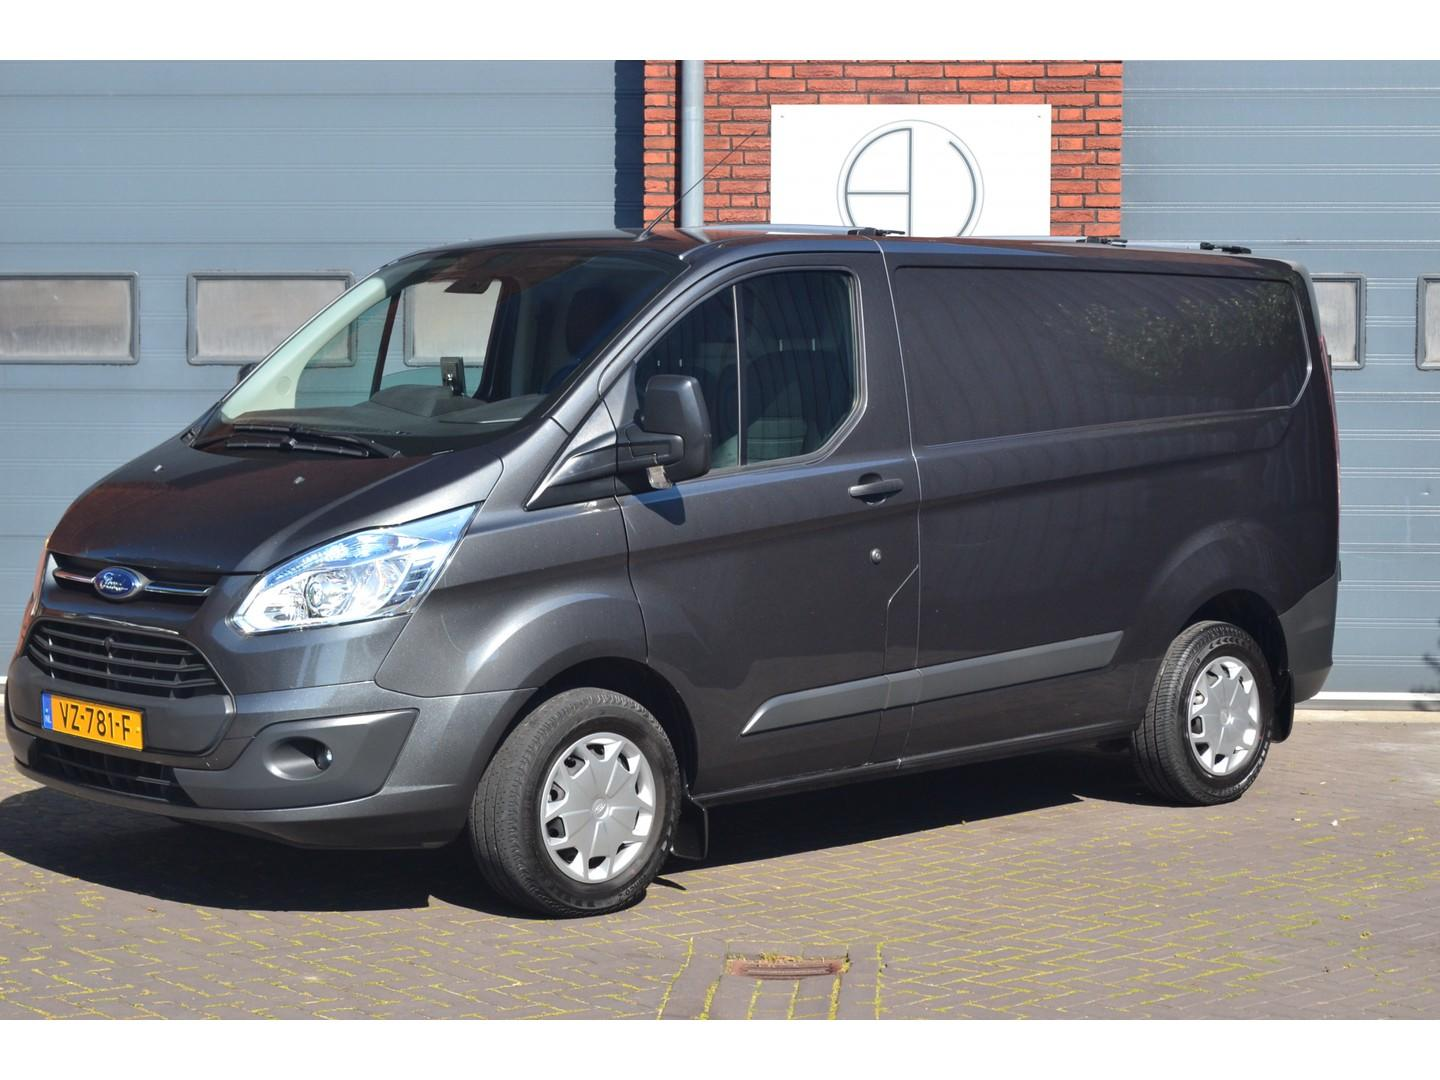 Ford Transit custom 270 2.2 tdci l1h1, 126pk, 3 persoons, airco, cruise control, trekhaak